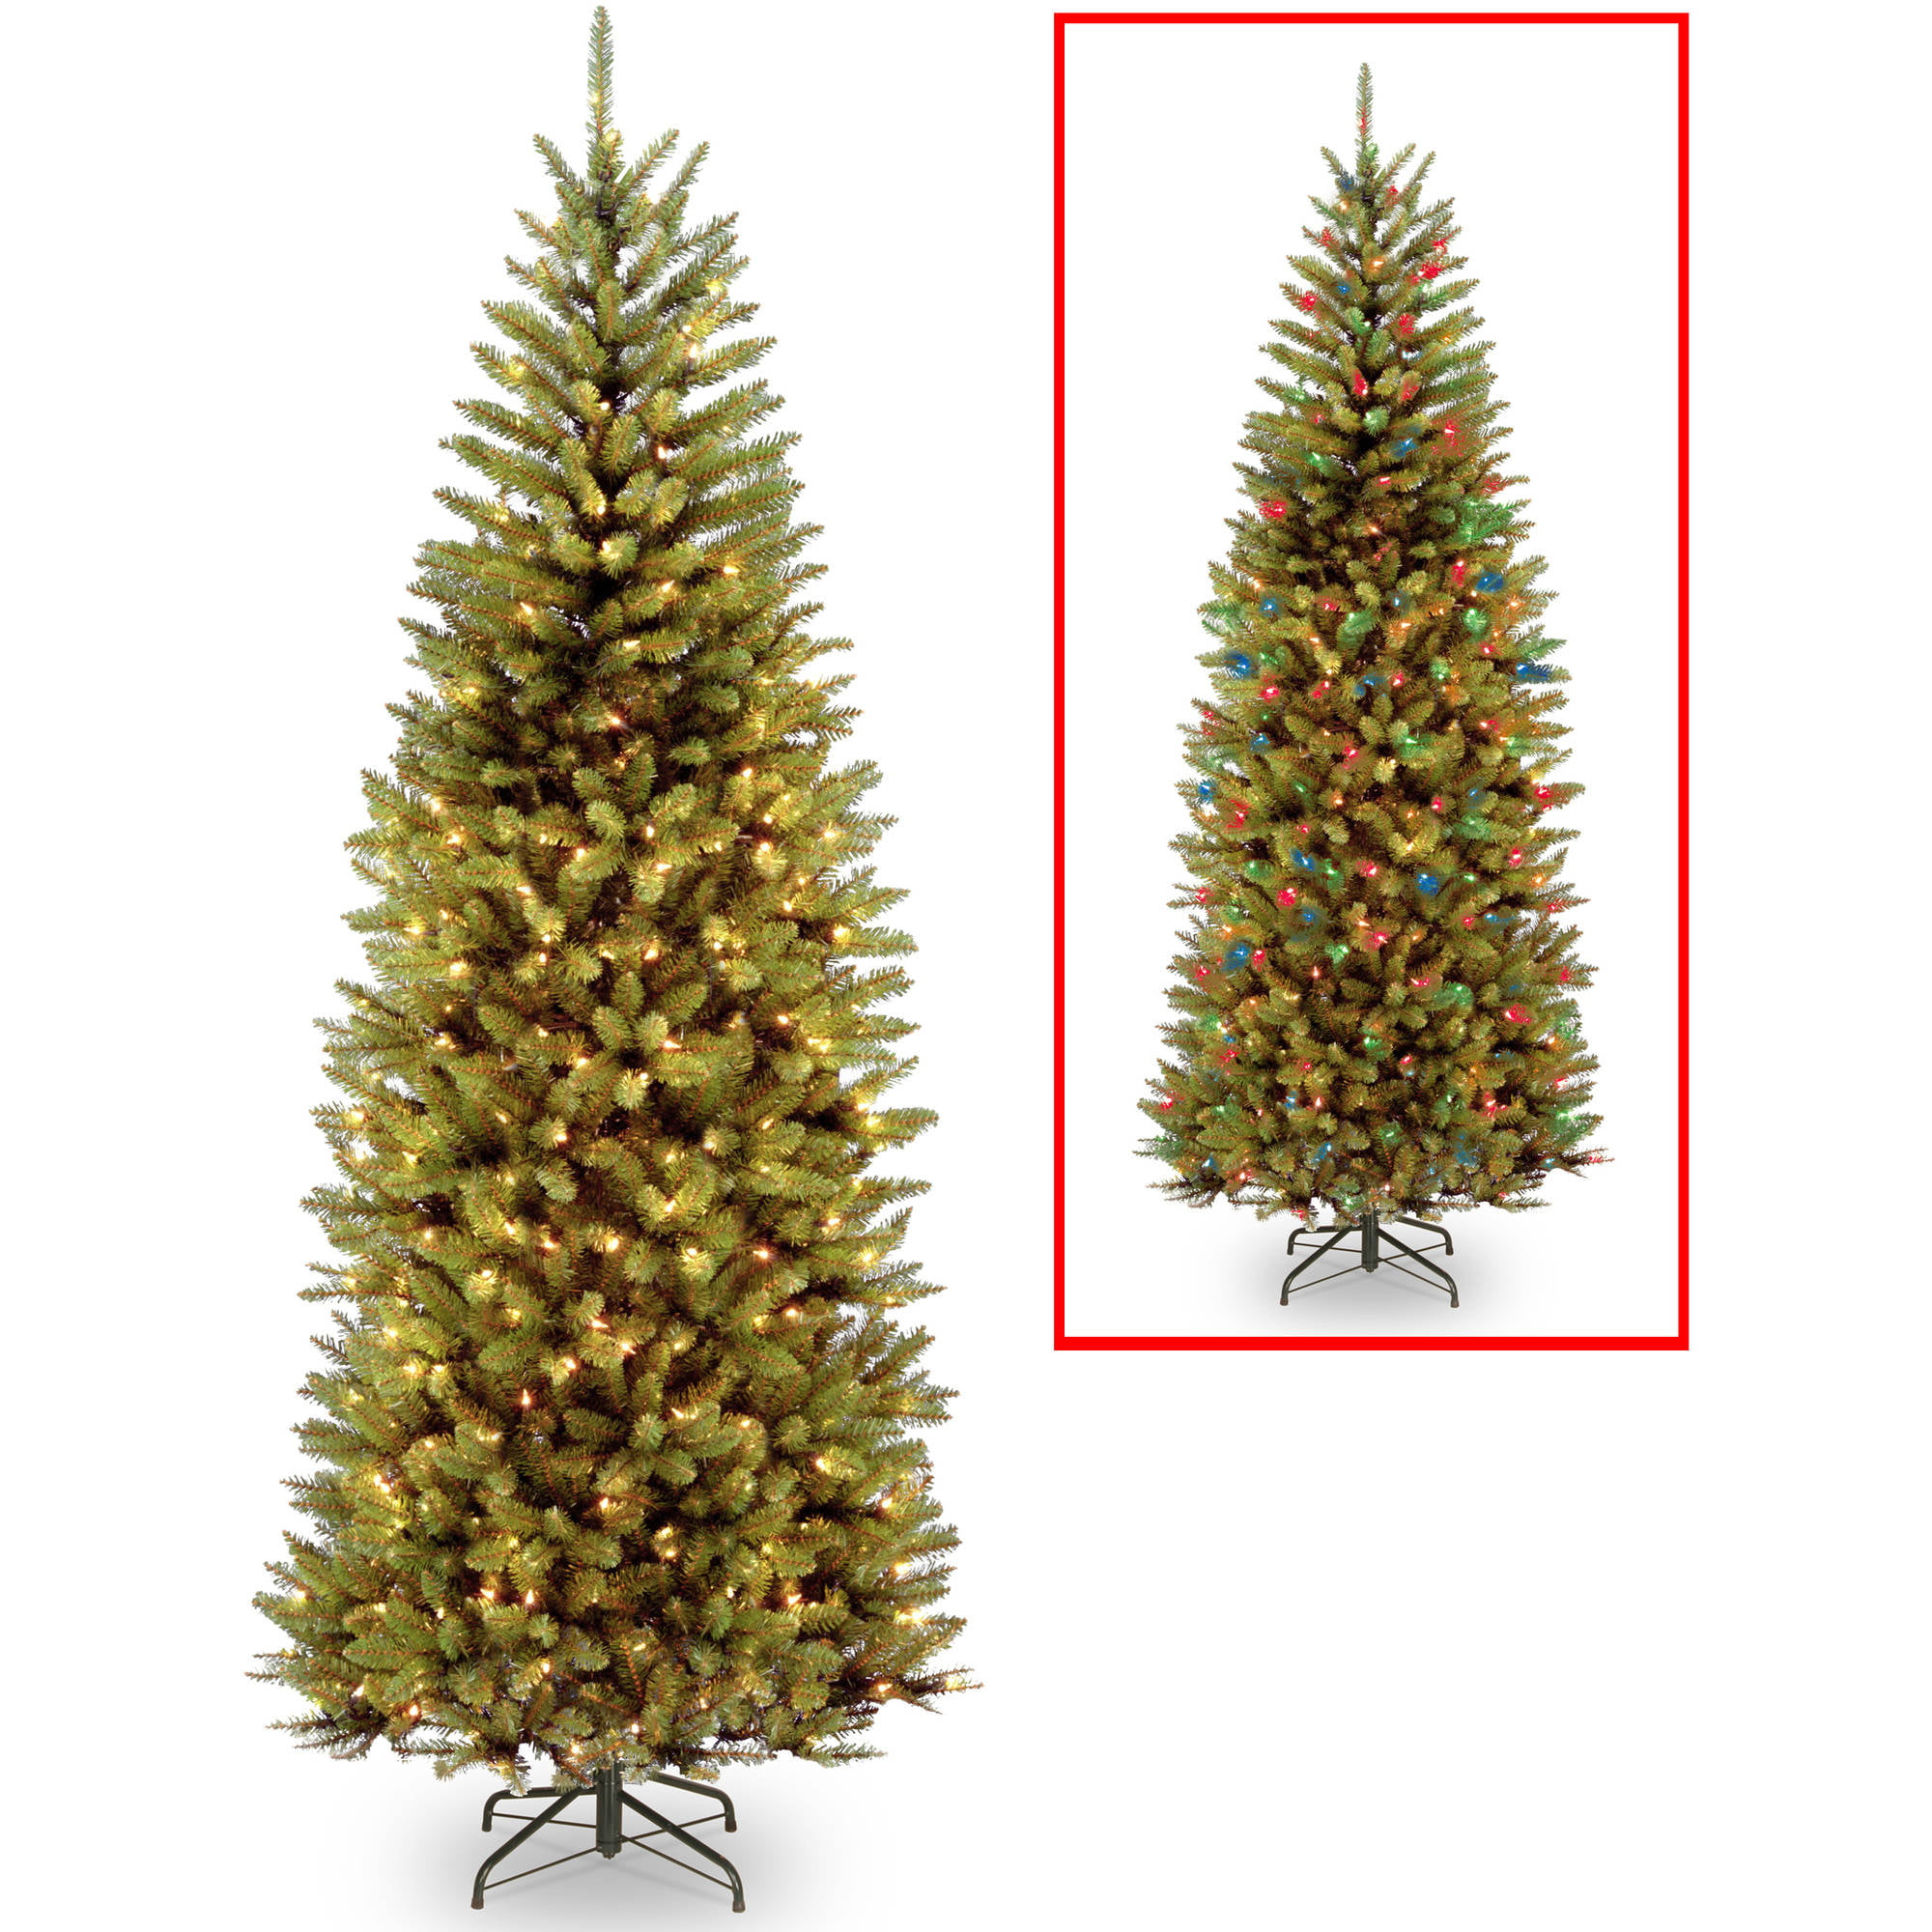 holiday time pre lit 4 teal blue artificial christmas tree clear lights walmartcom - Christmas Trees With Lights